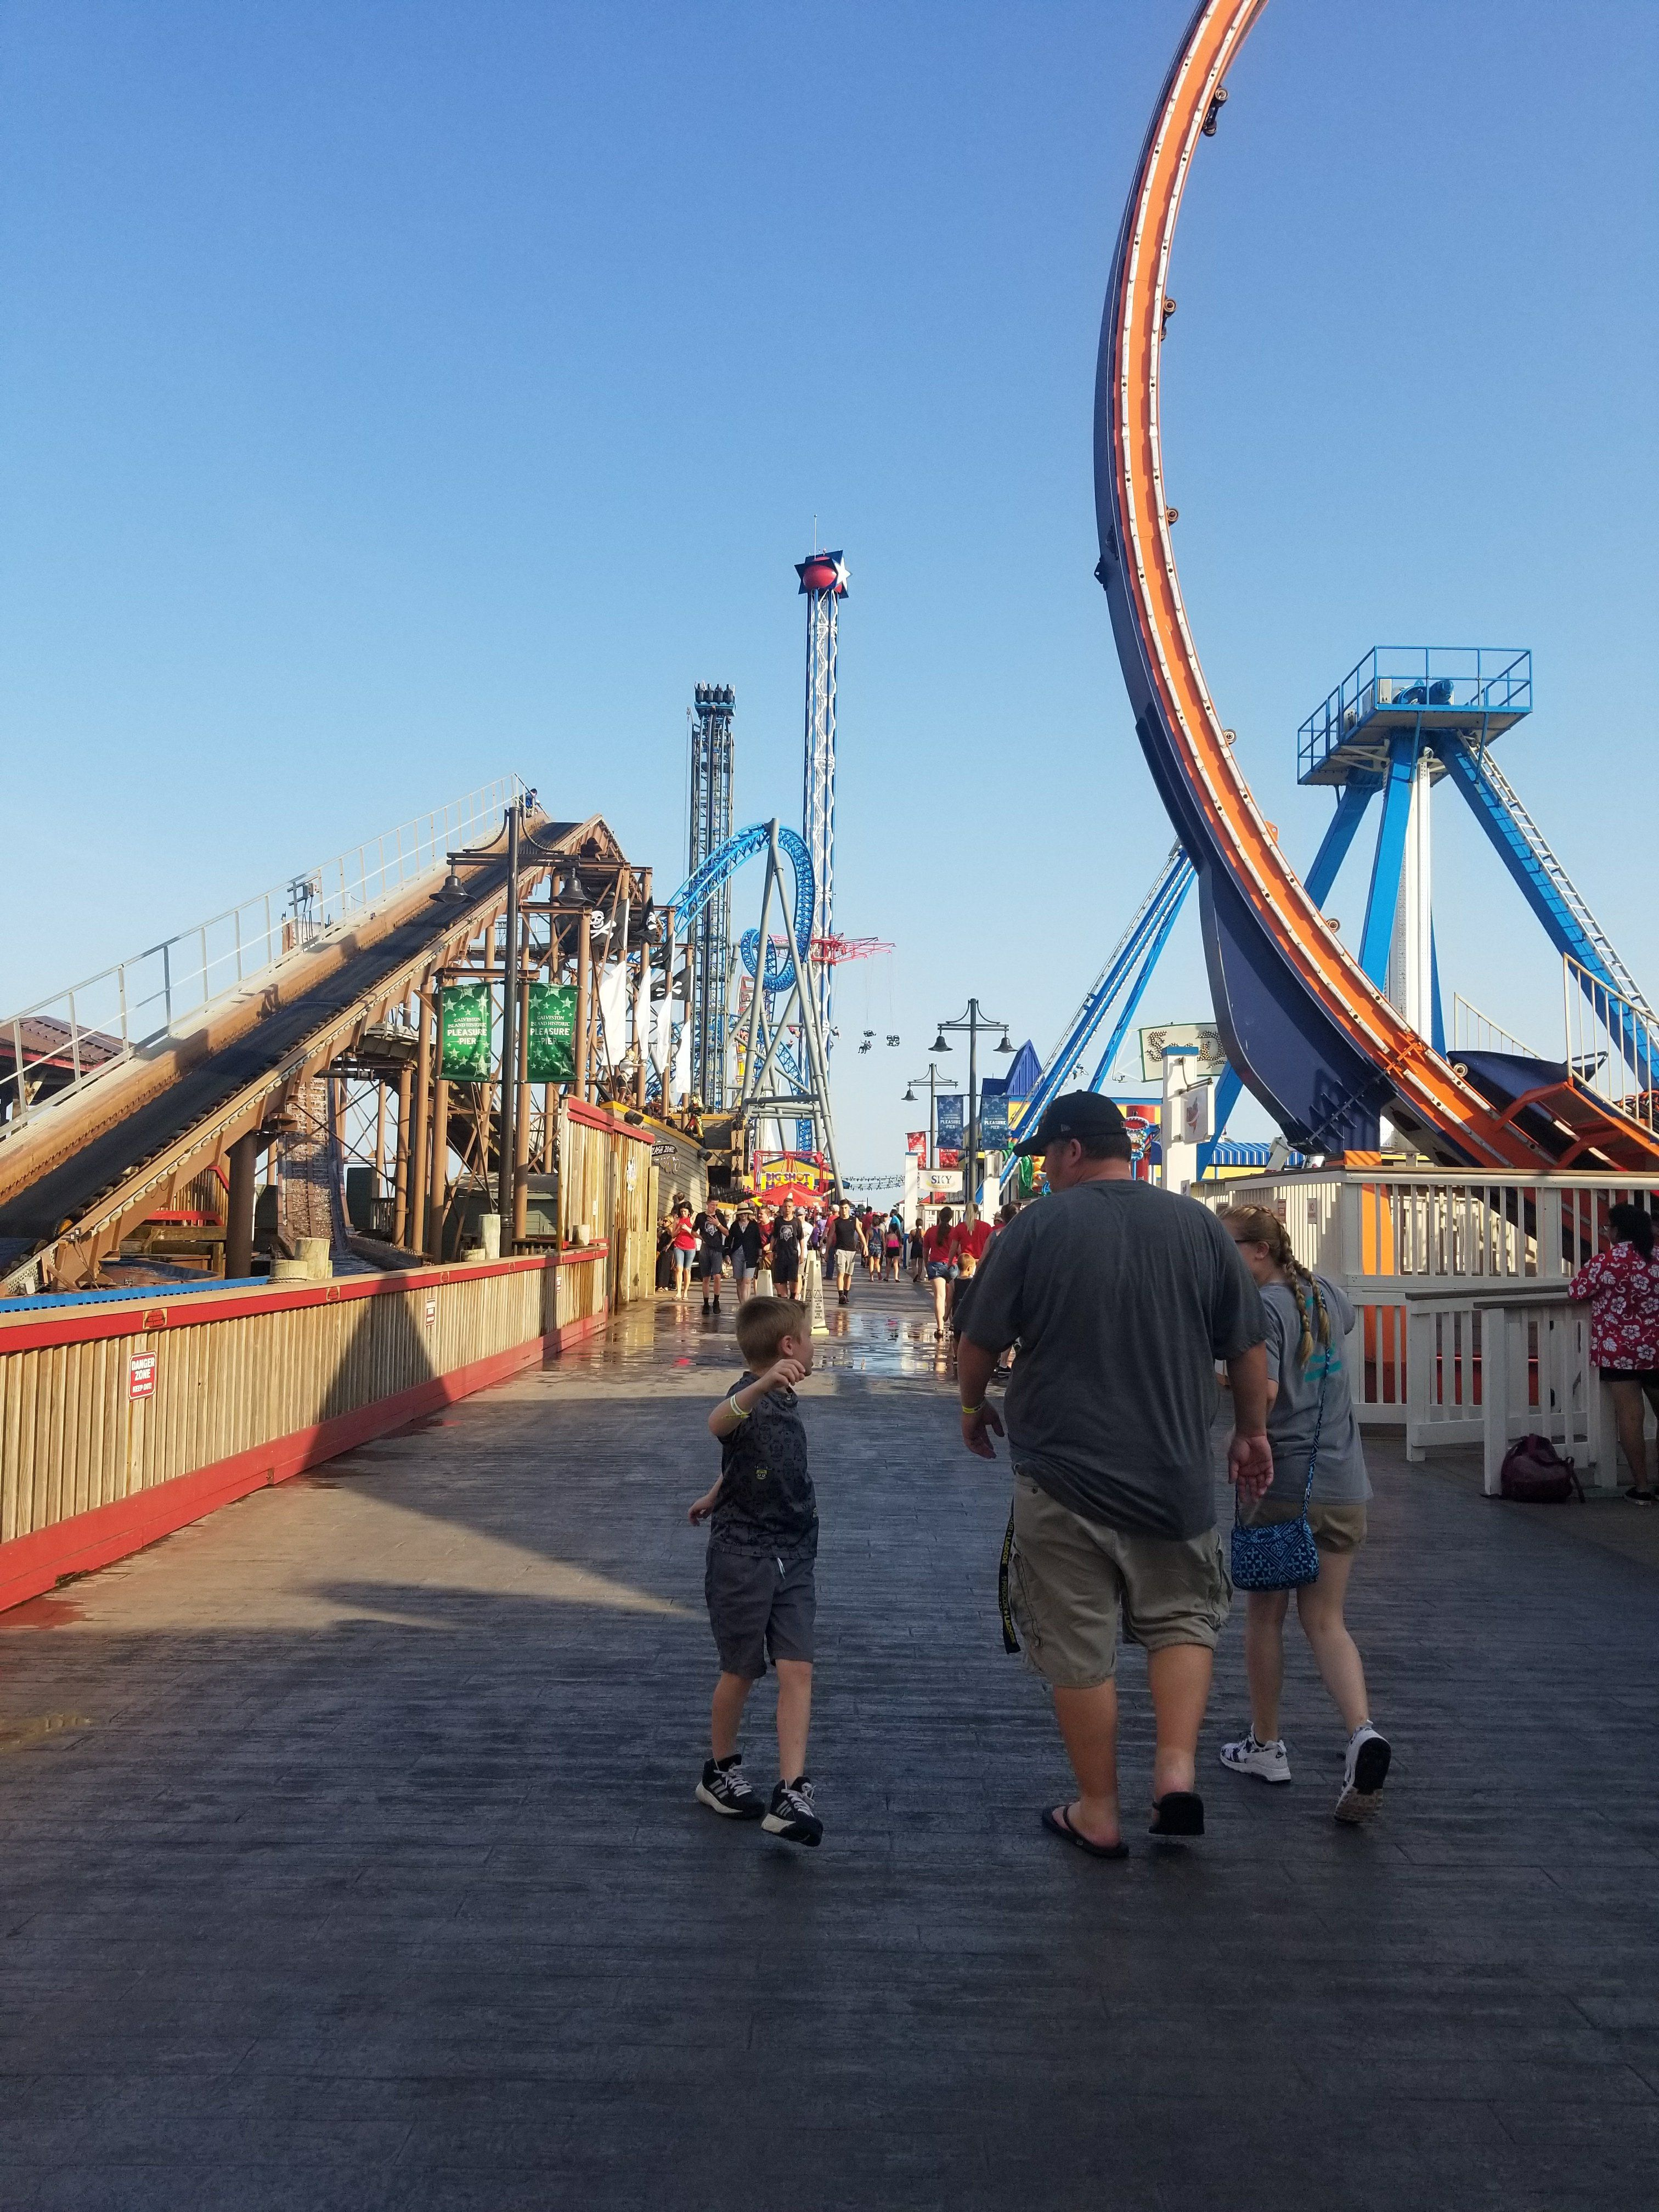 Everything You Need To Know Before You Visit Galveston Island Pleasure Pier With Kids Galveston Galveston Pleasure Pier Texas Beach Vacation